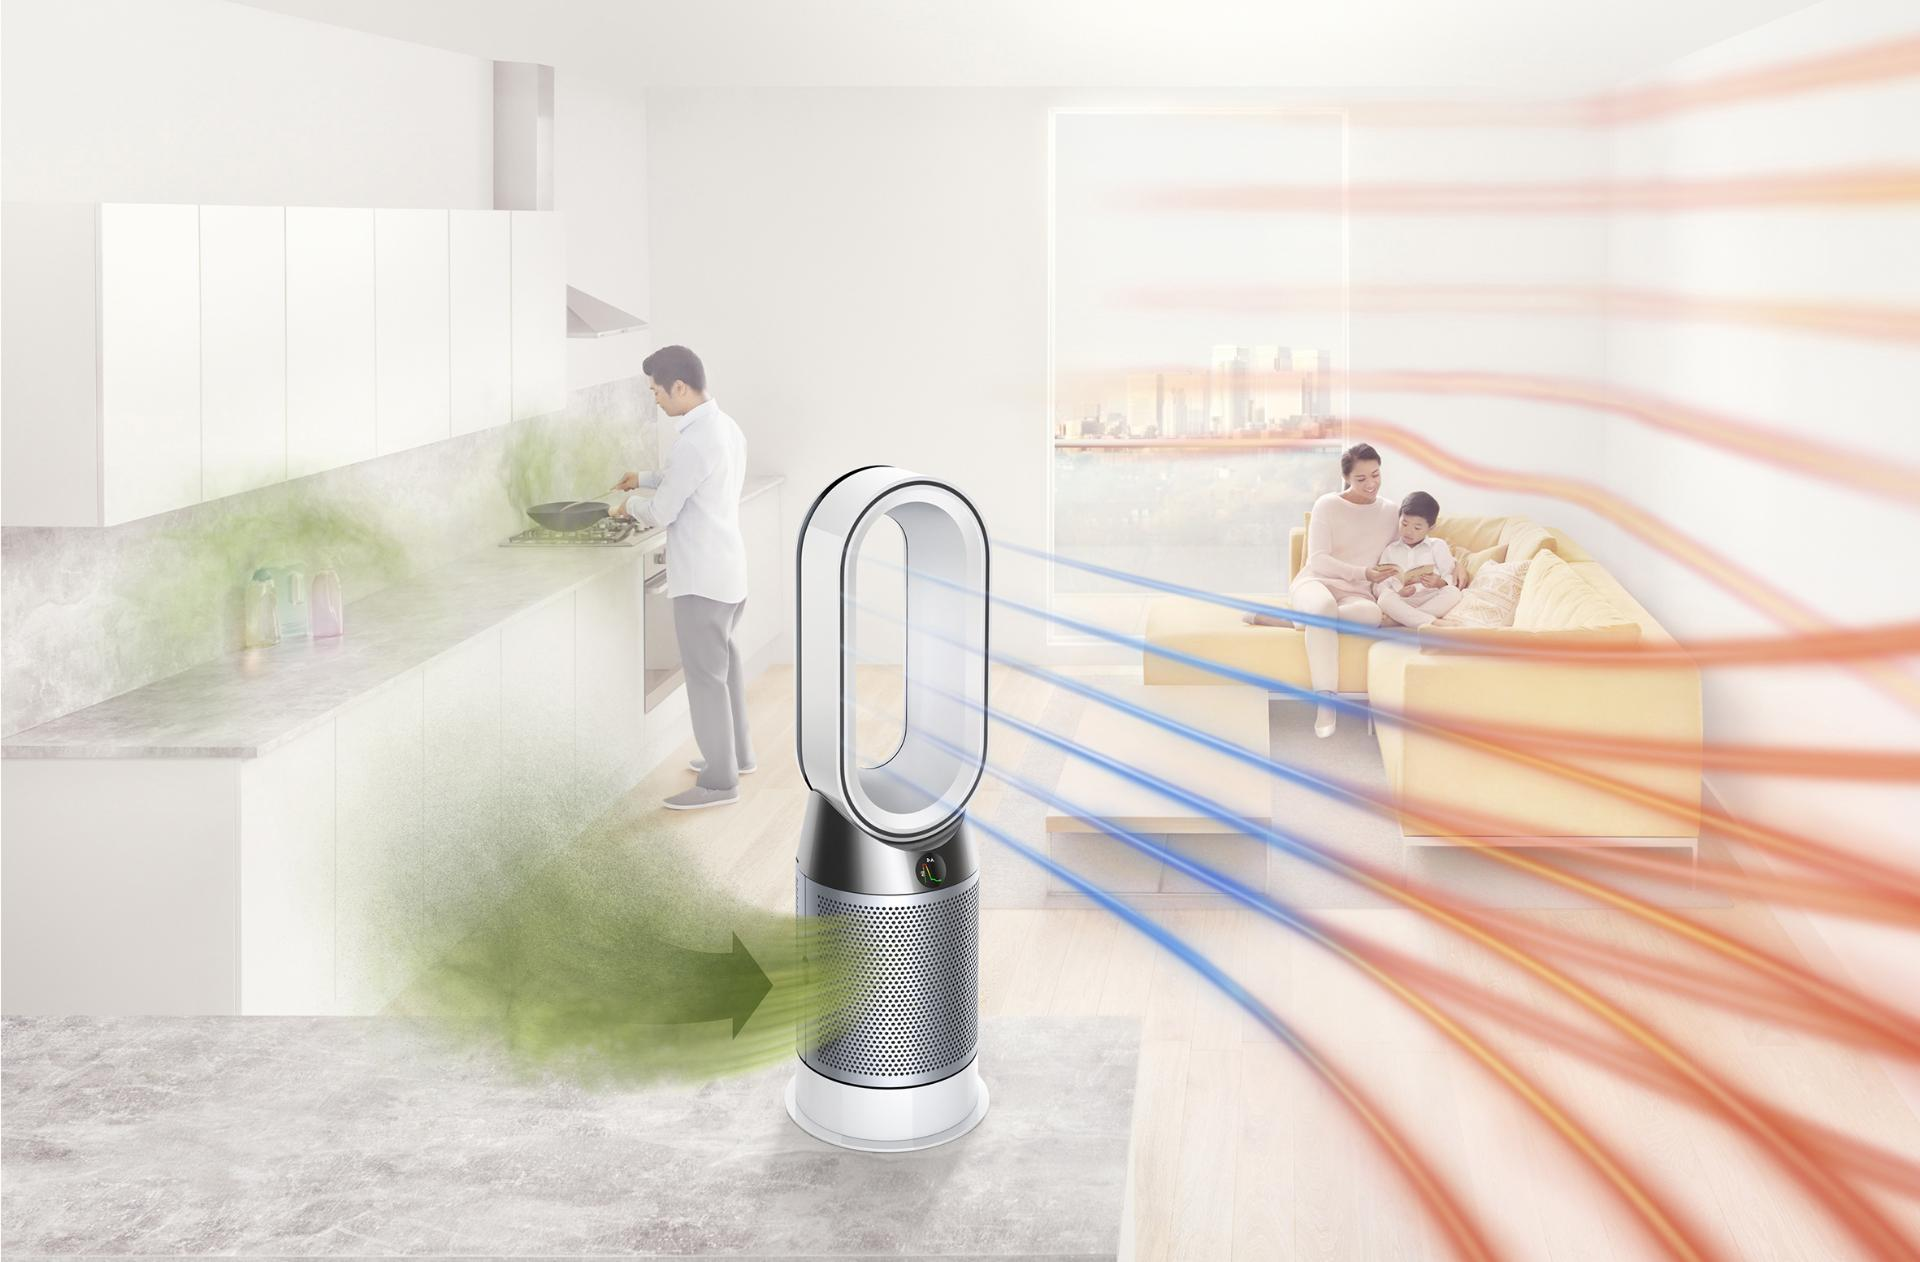 Demonstration of Dyson purifier in living area